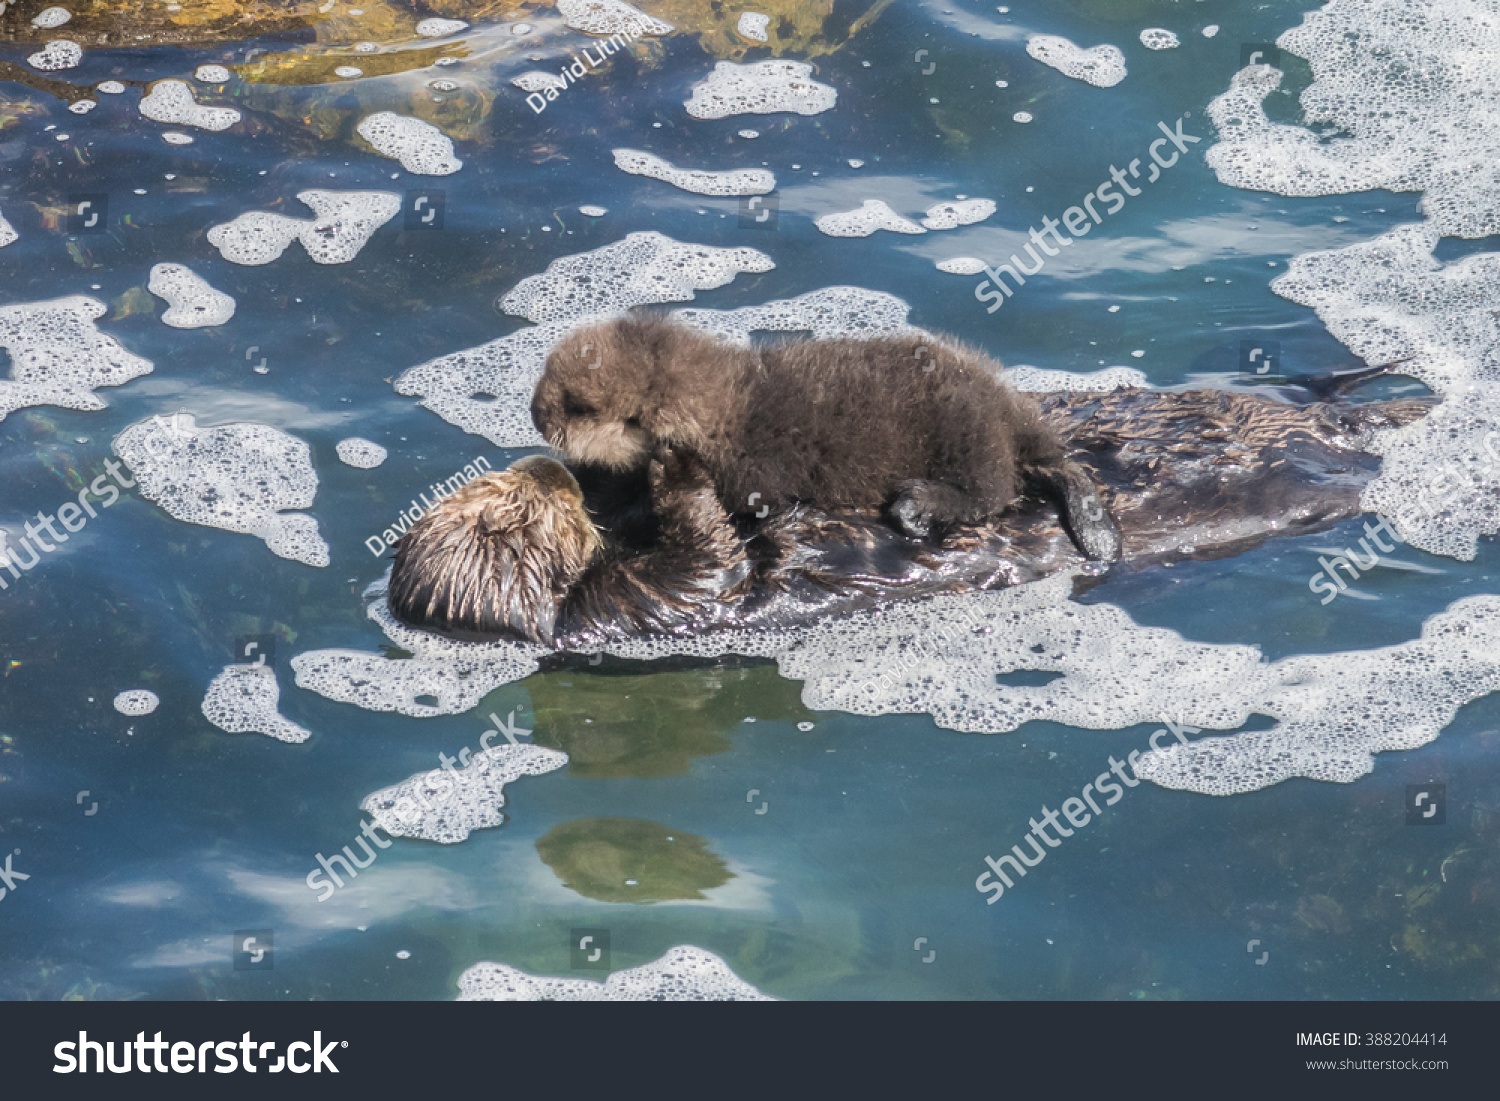 A wild mother Southern Sea Otter (Enhydra lutris) and her 2-day old newborn pup float in the water of a protected cove, in Monterey Bay, California. Footage available.